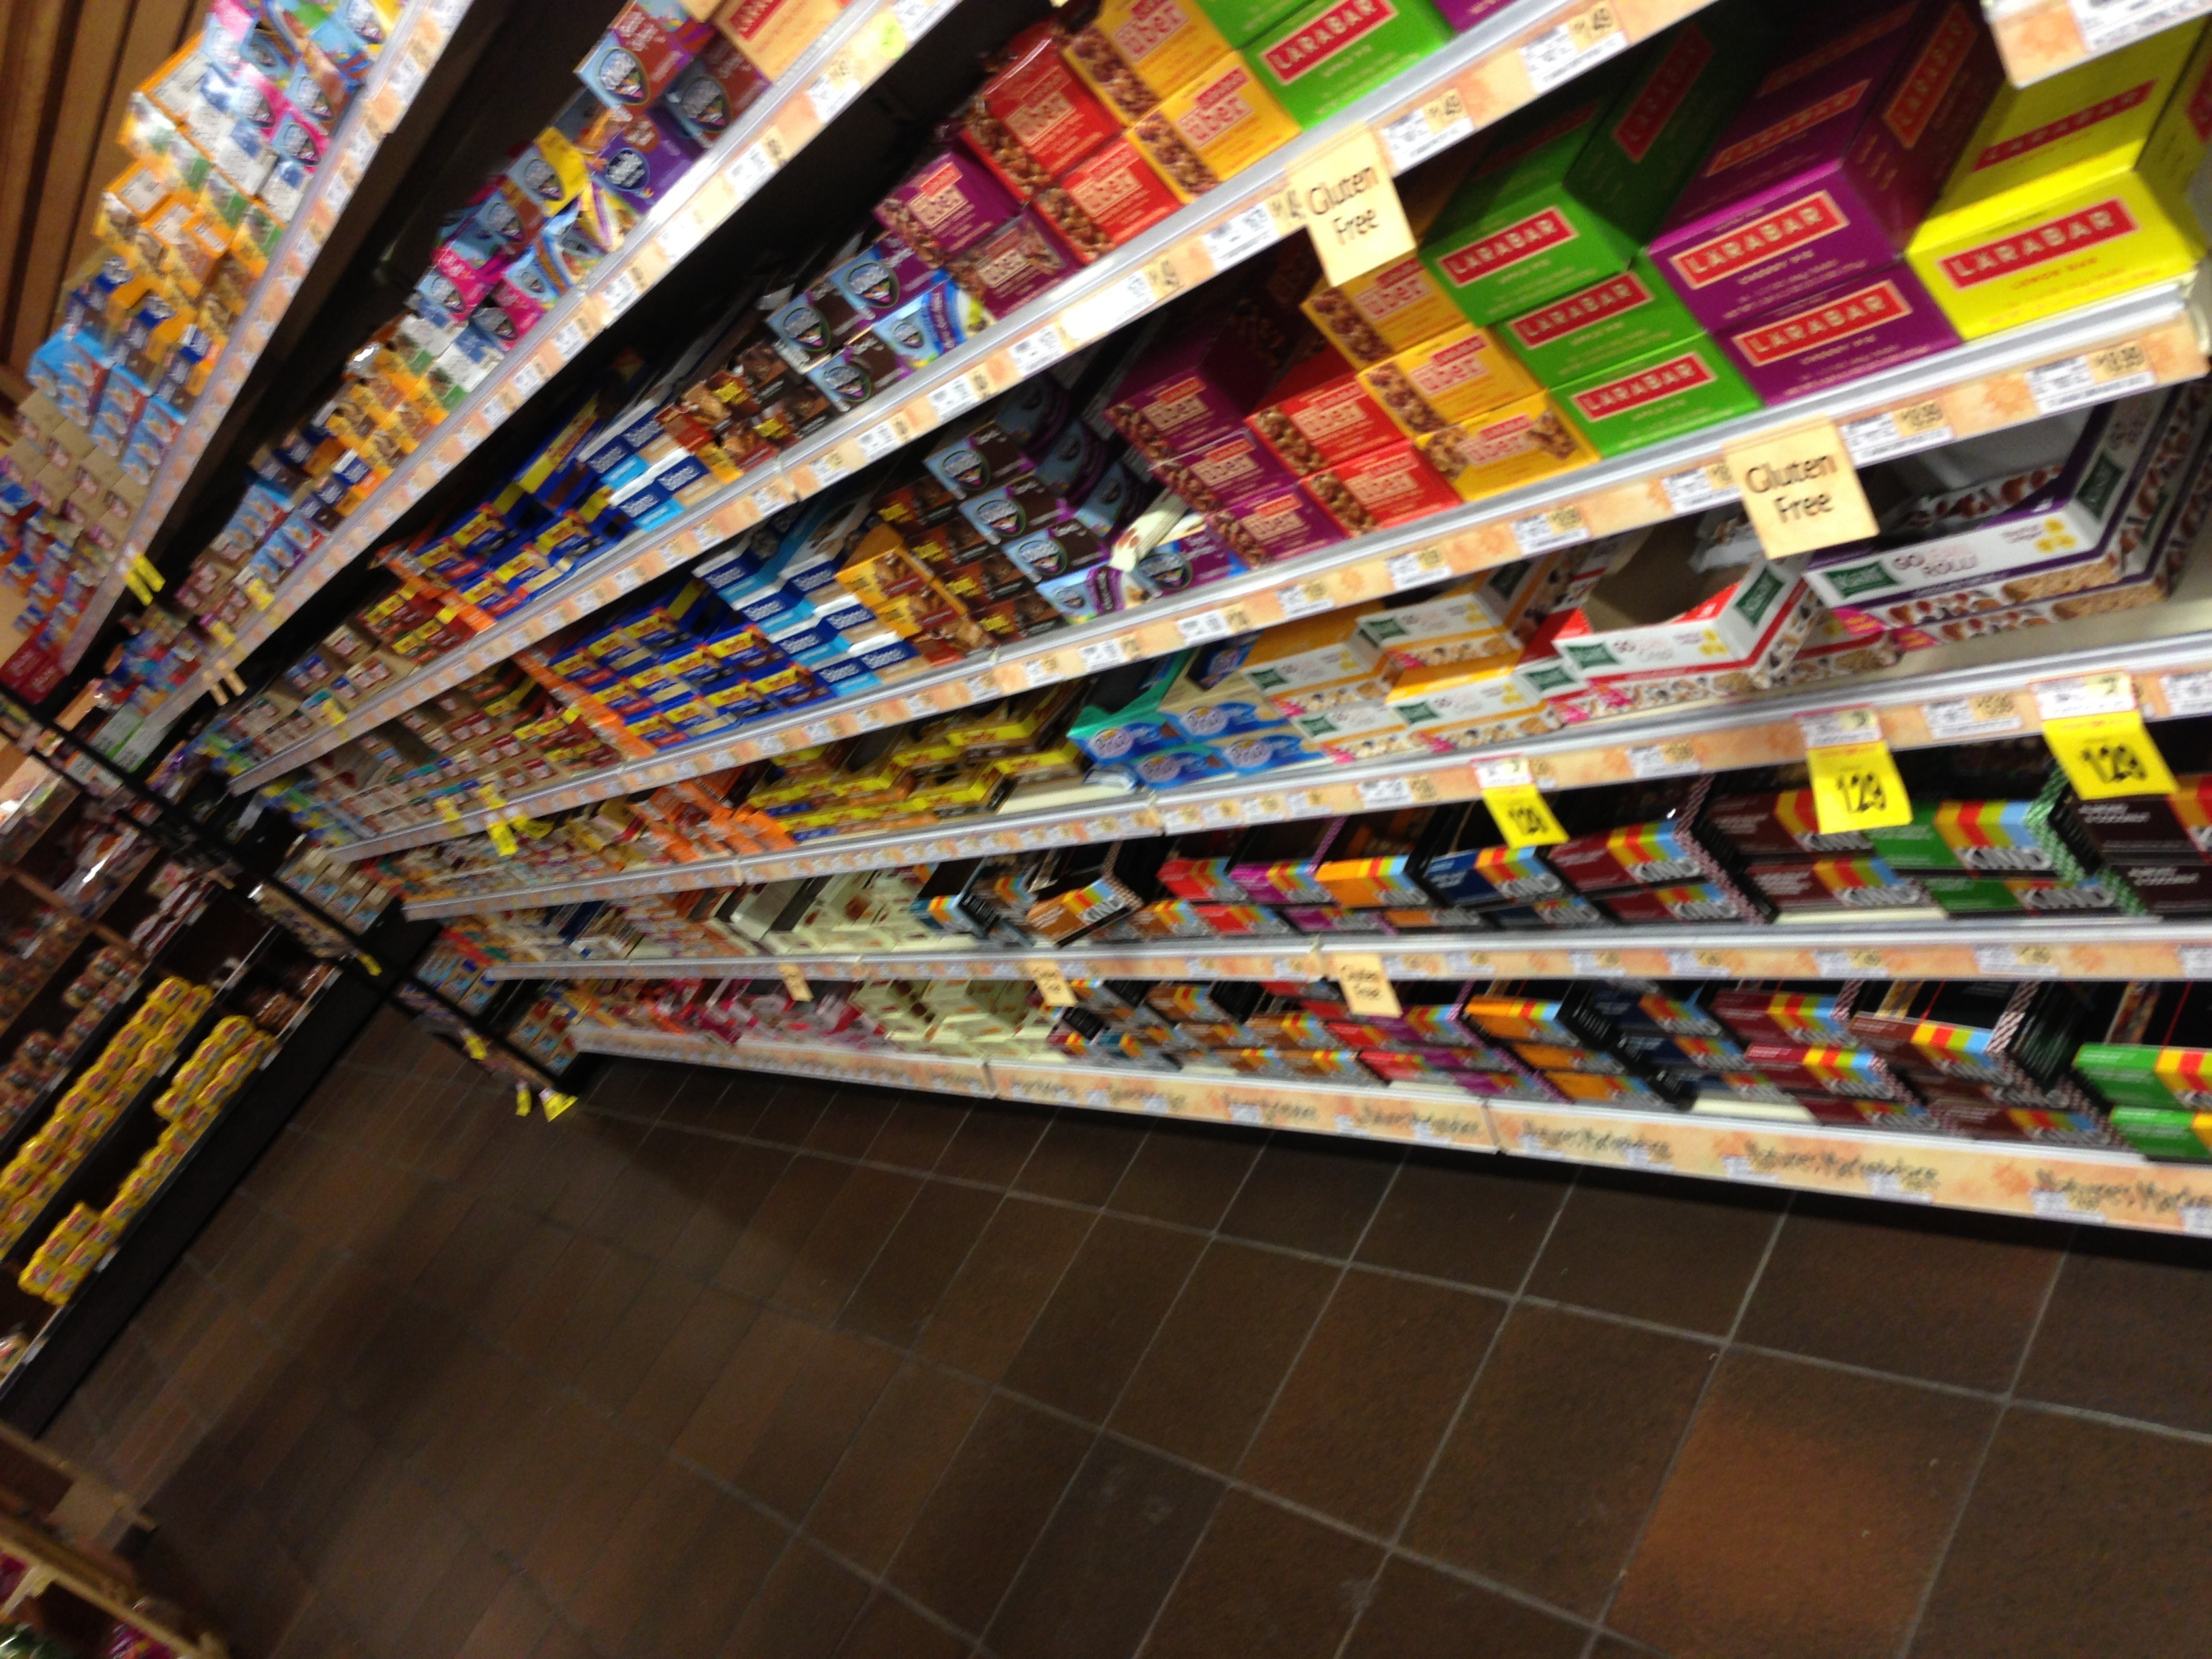 File:Retail grocery store shelf display of broad range of food bars, meal  bars, and snack bars- 2013-04-19 14-39.jpg - Wikimedia Commons